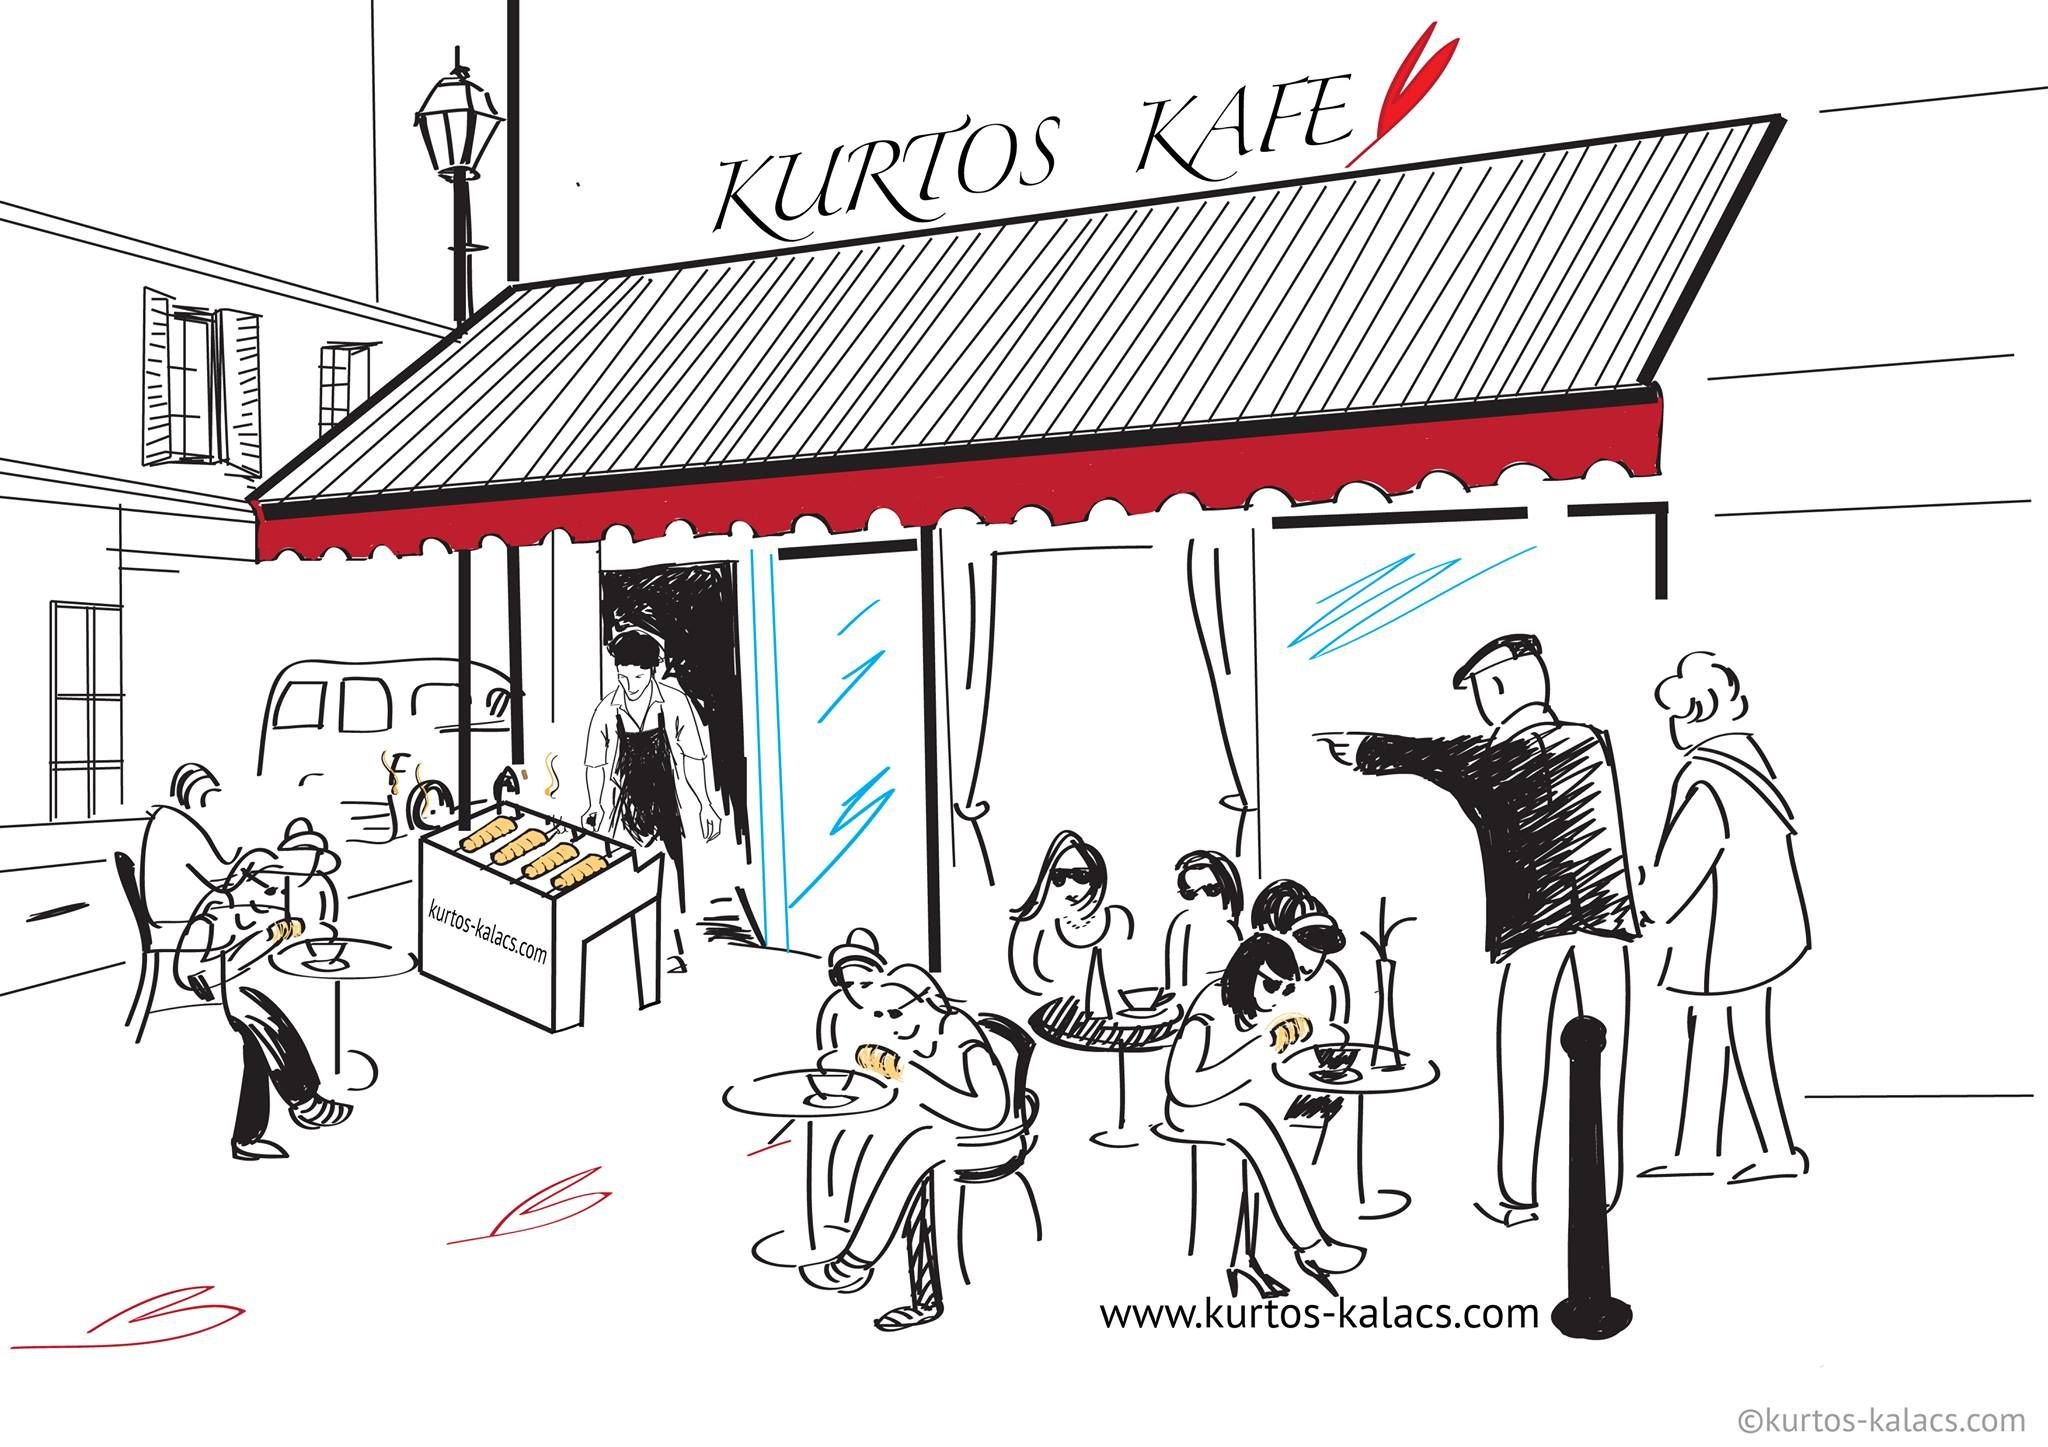 www.kurtos-kalacs.com There are so many coffee shops these days. If you want yours to stand out from the others, why not bake some fresh Kurtoskalacs outside to accompany the coffee that you sell?